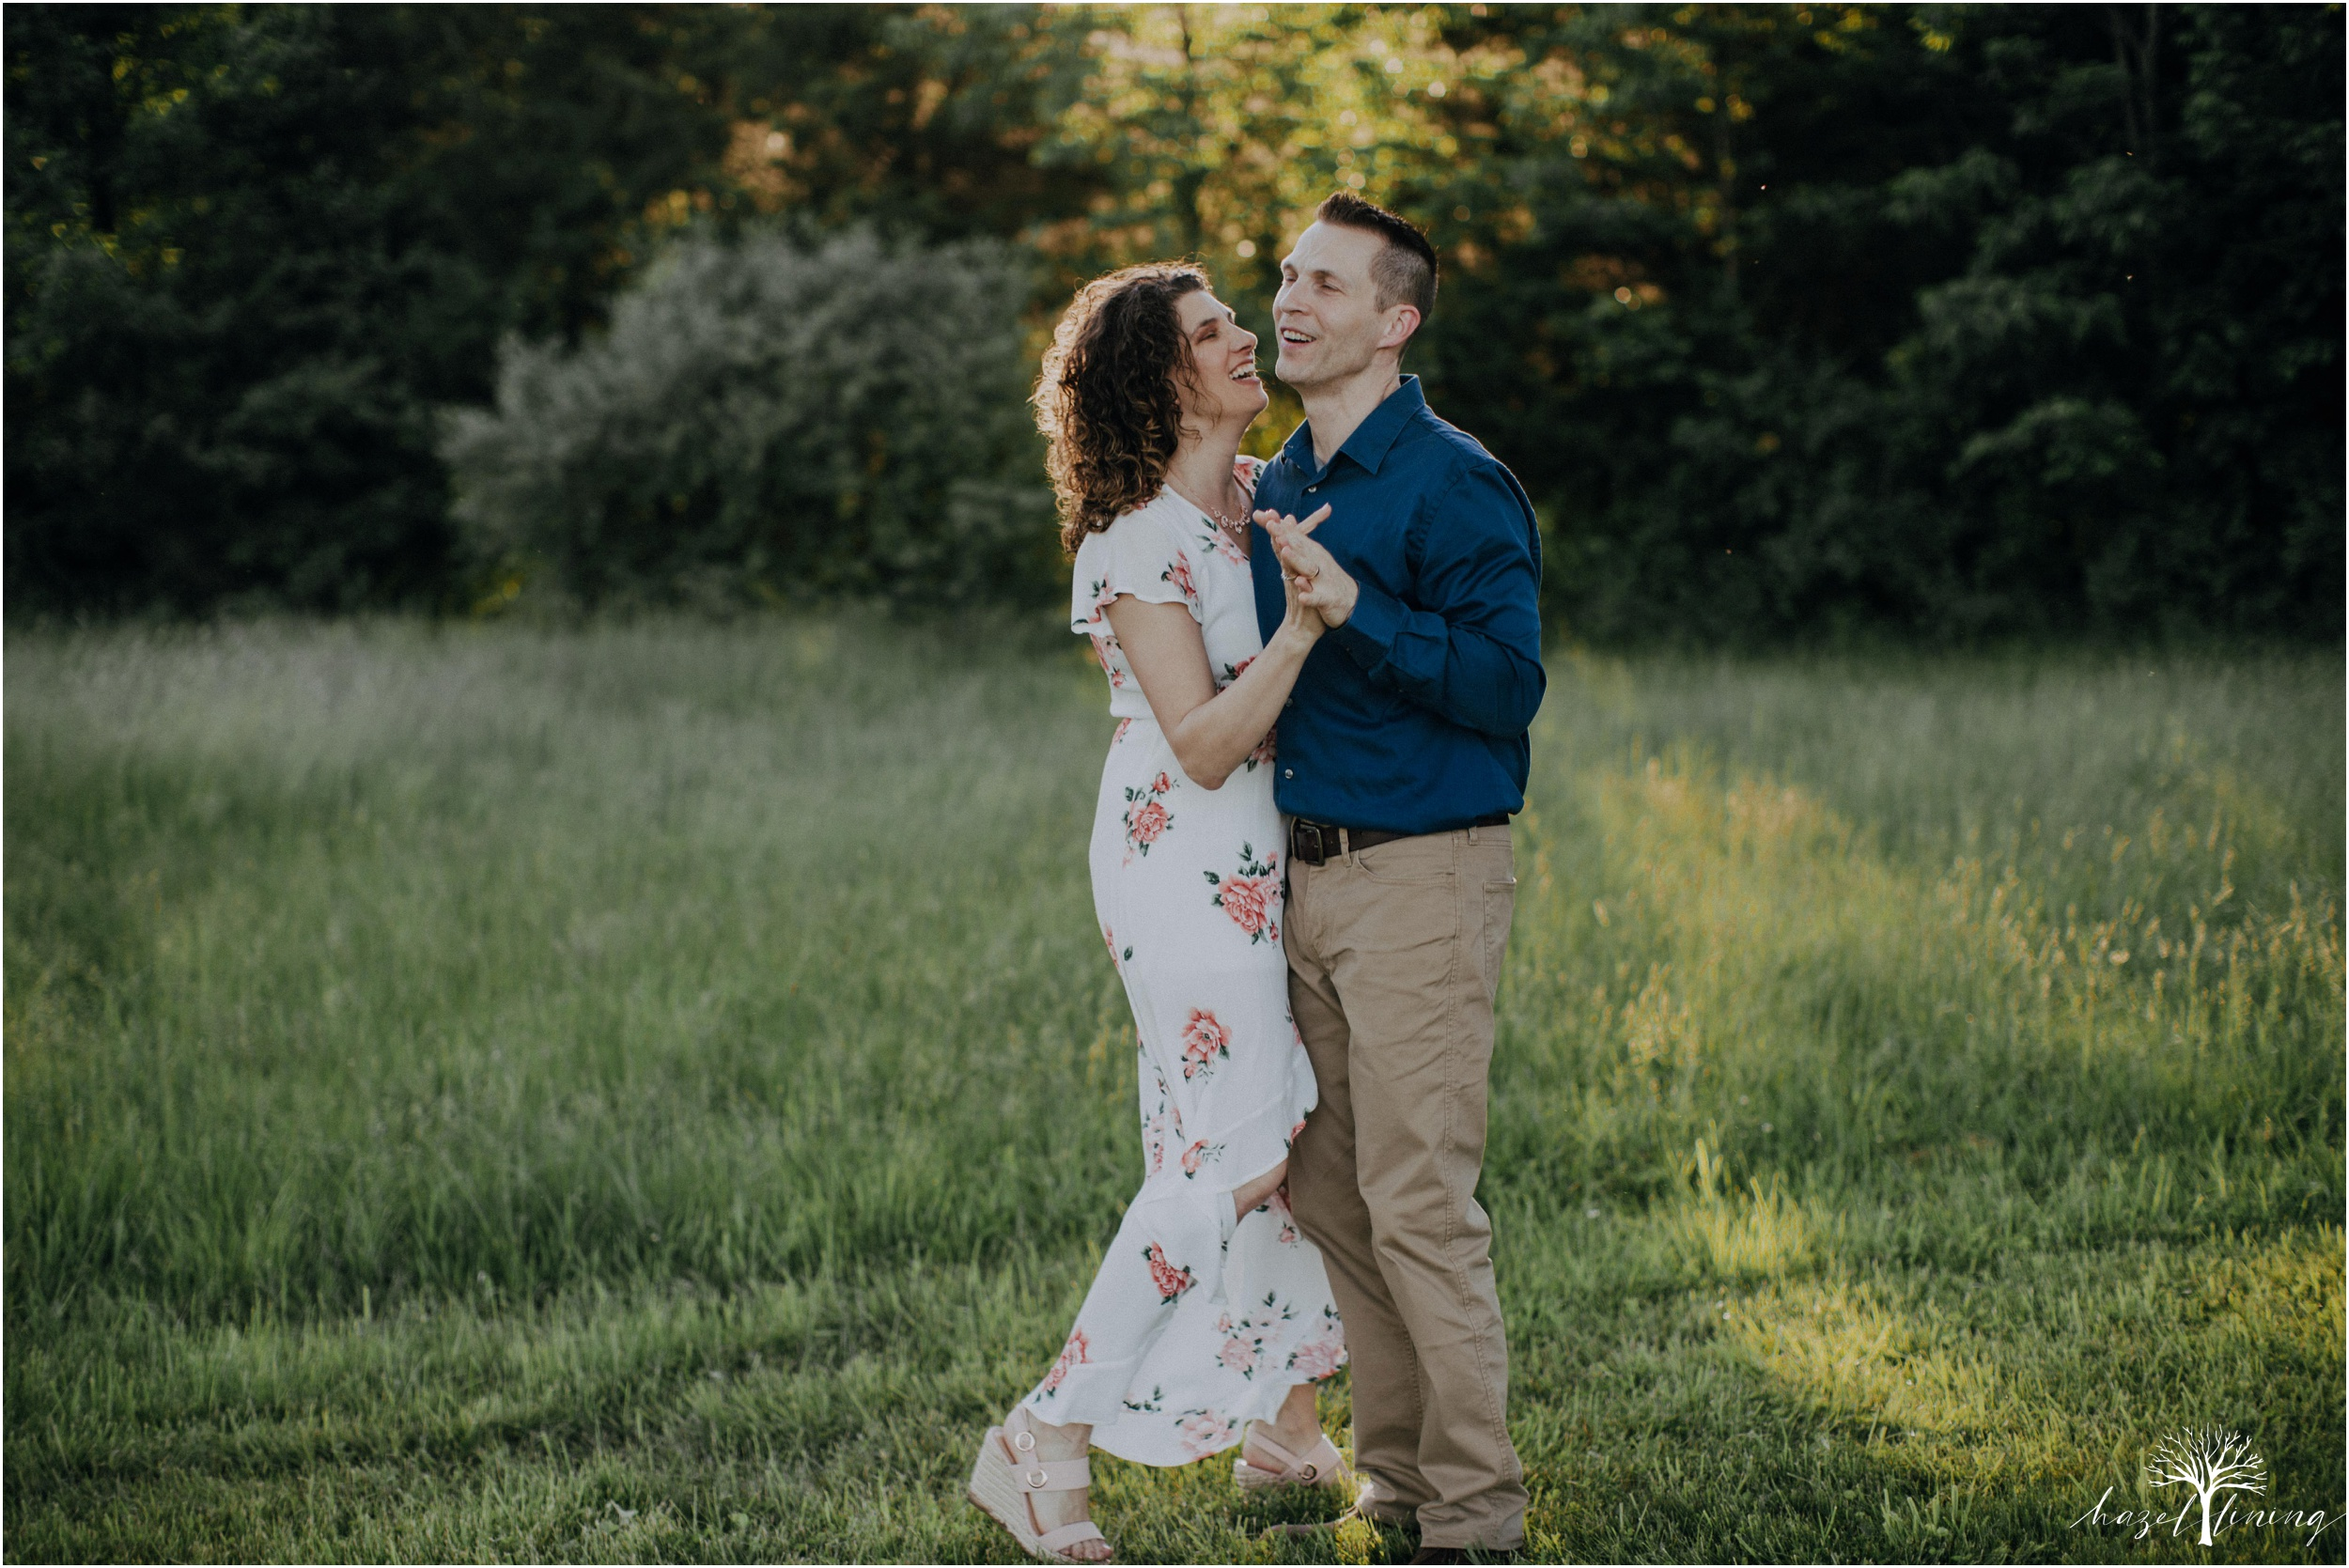 pete-rachelle-sawadski-20-year-anniversary-portrait-session-hazel-lining-photography-destination-elopement-wedding-engagement-photography_0278.jpg